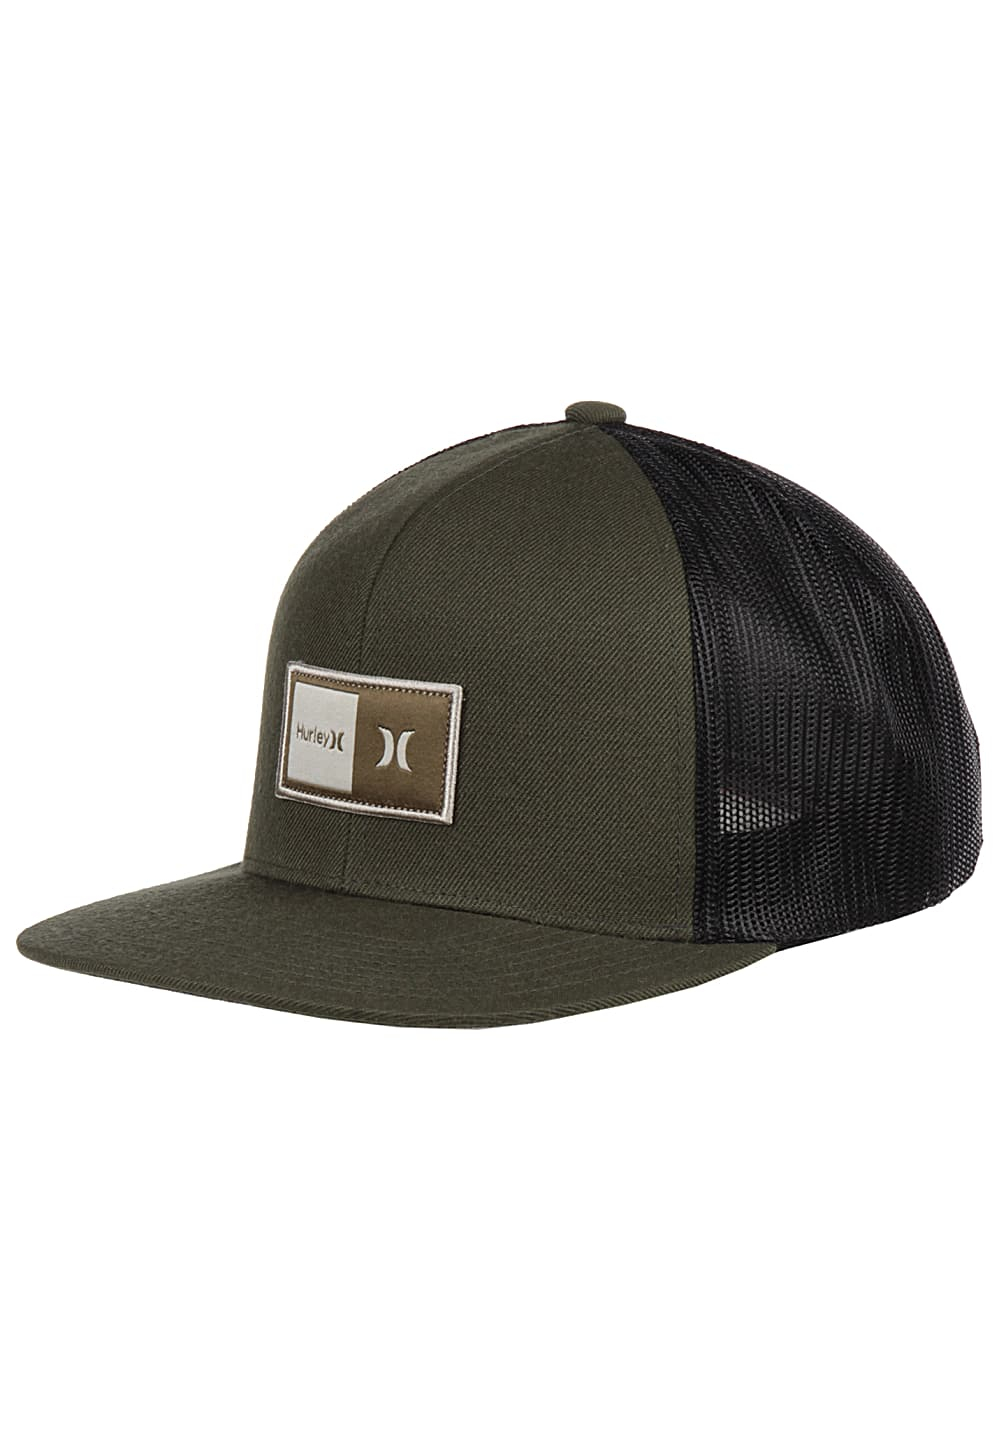 33dfa2c185a1b Hurley Natural - Trucker Cap - Green - Planet Sports